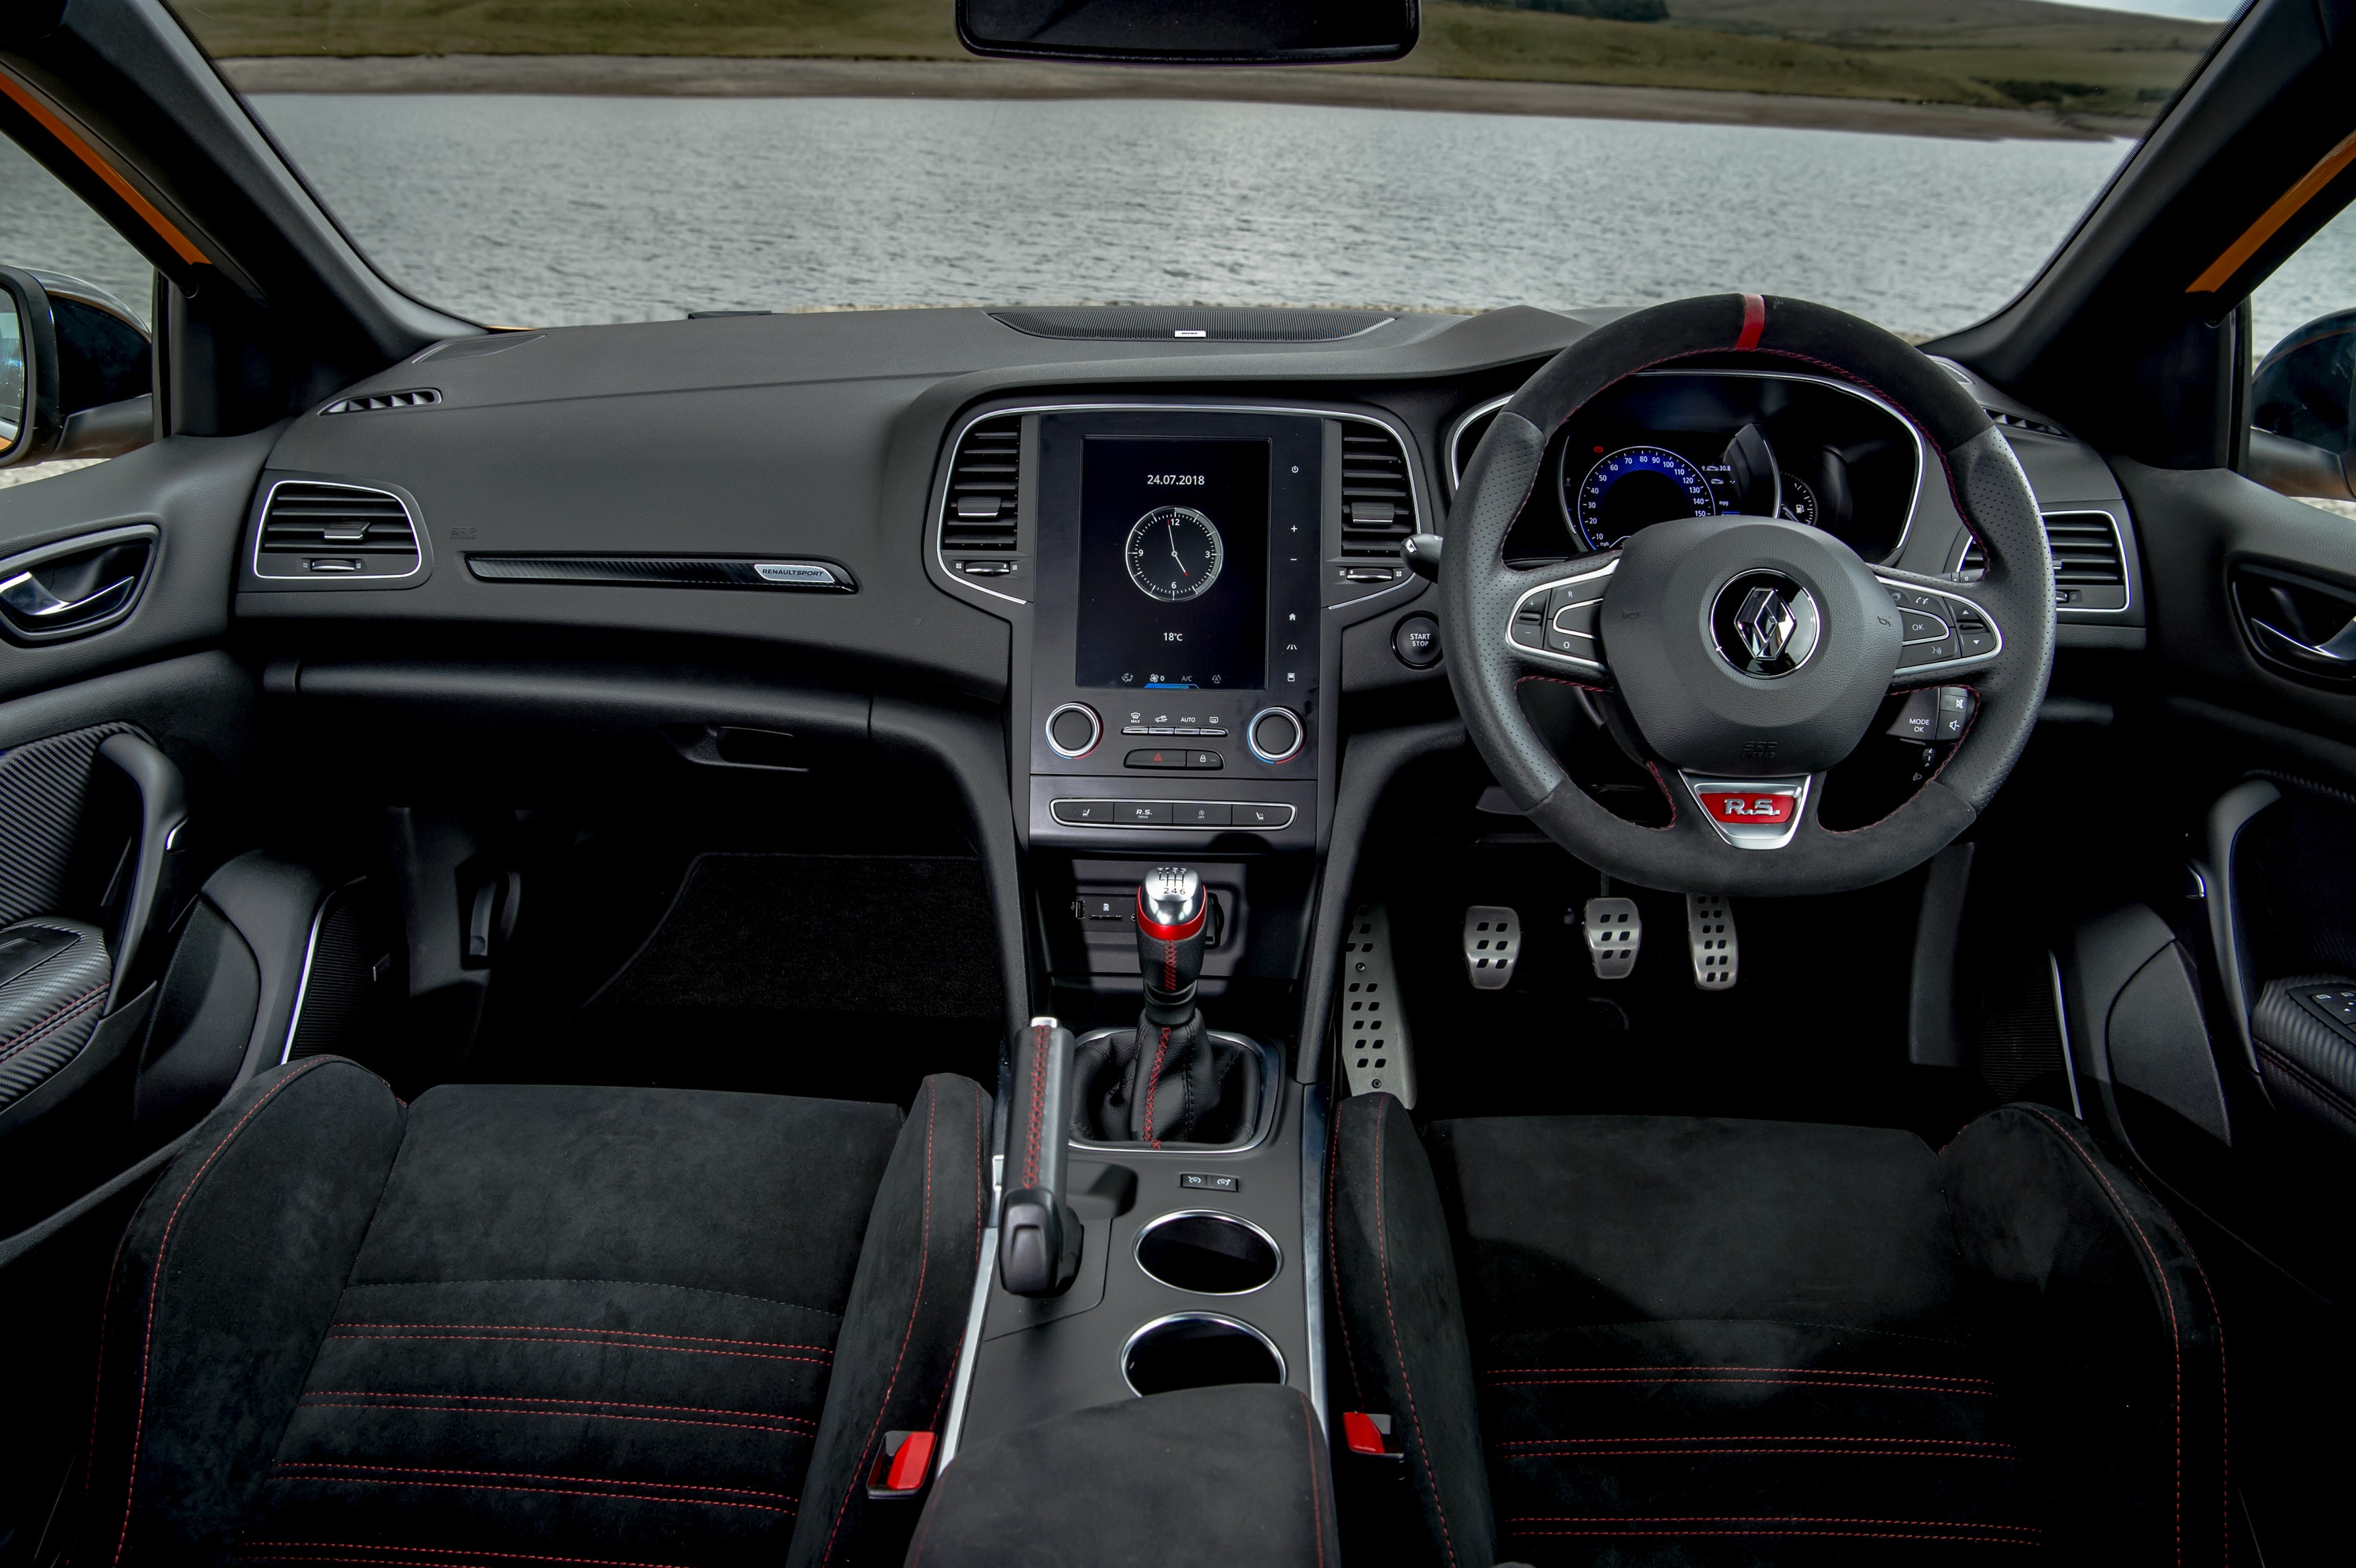 interior of Renault megane